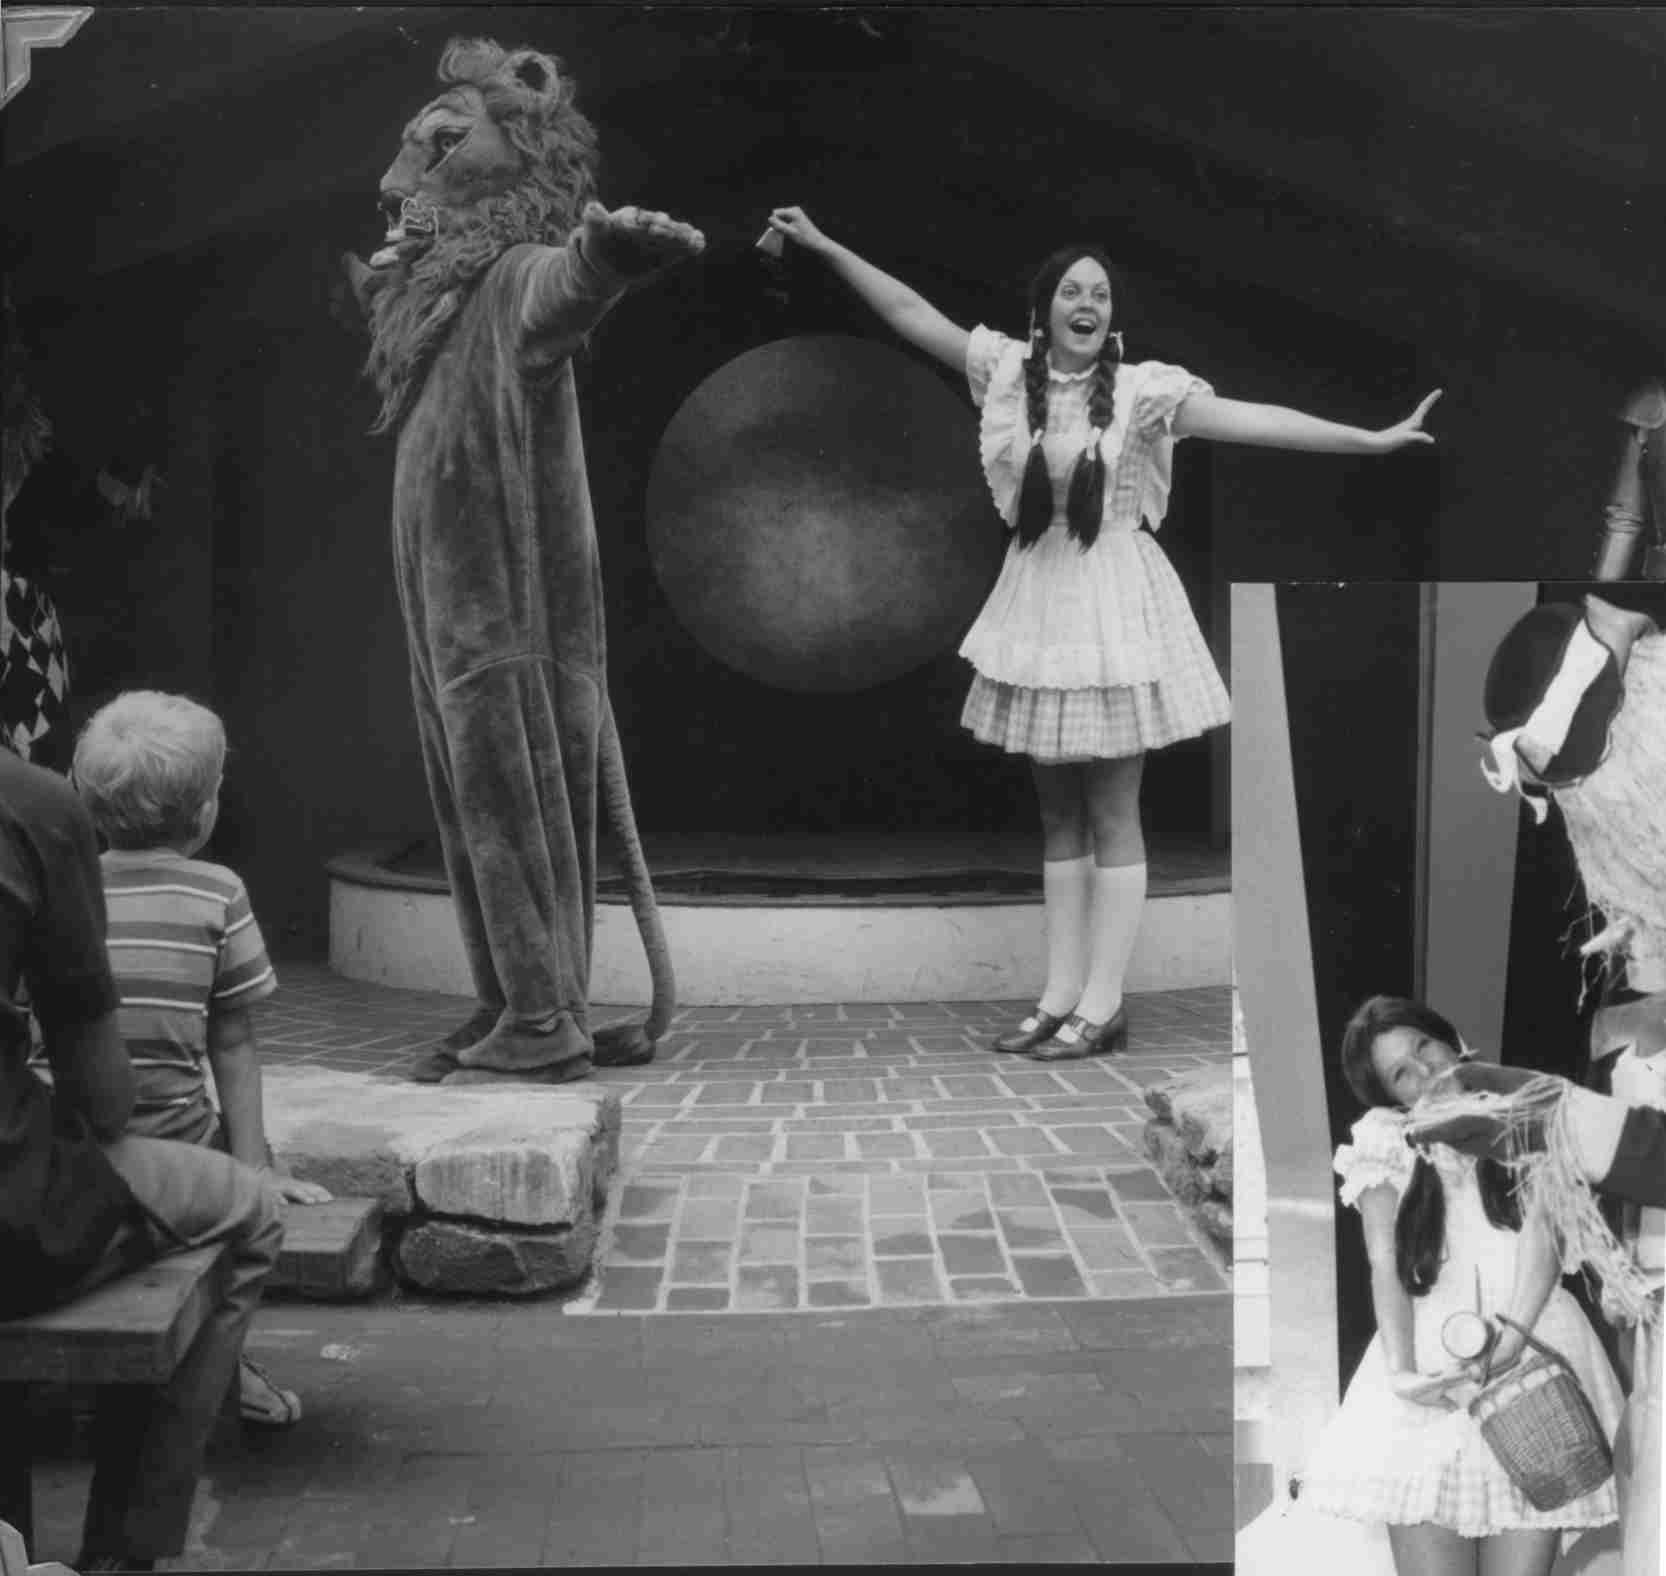 Wizard Of Oz Theme Park I Went To As A Kid. We Followed